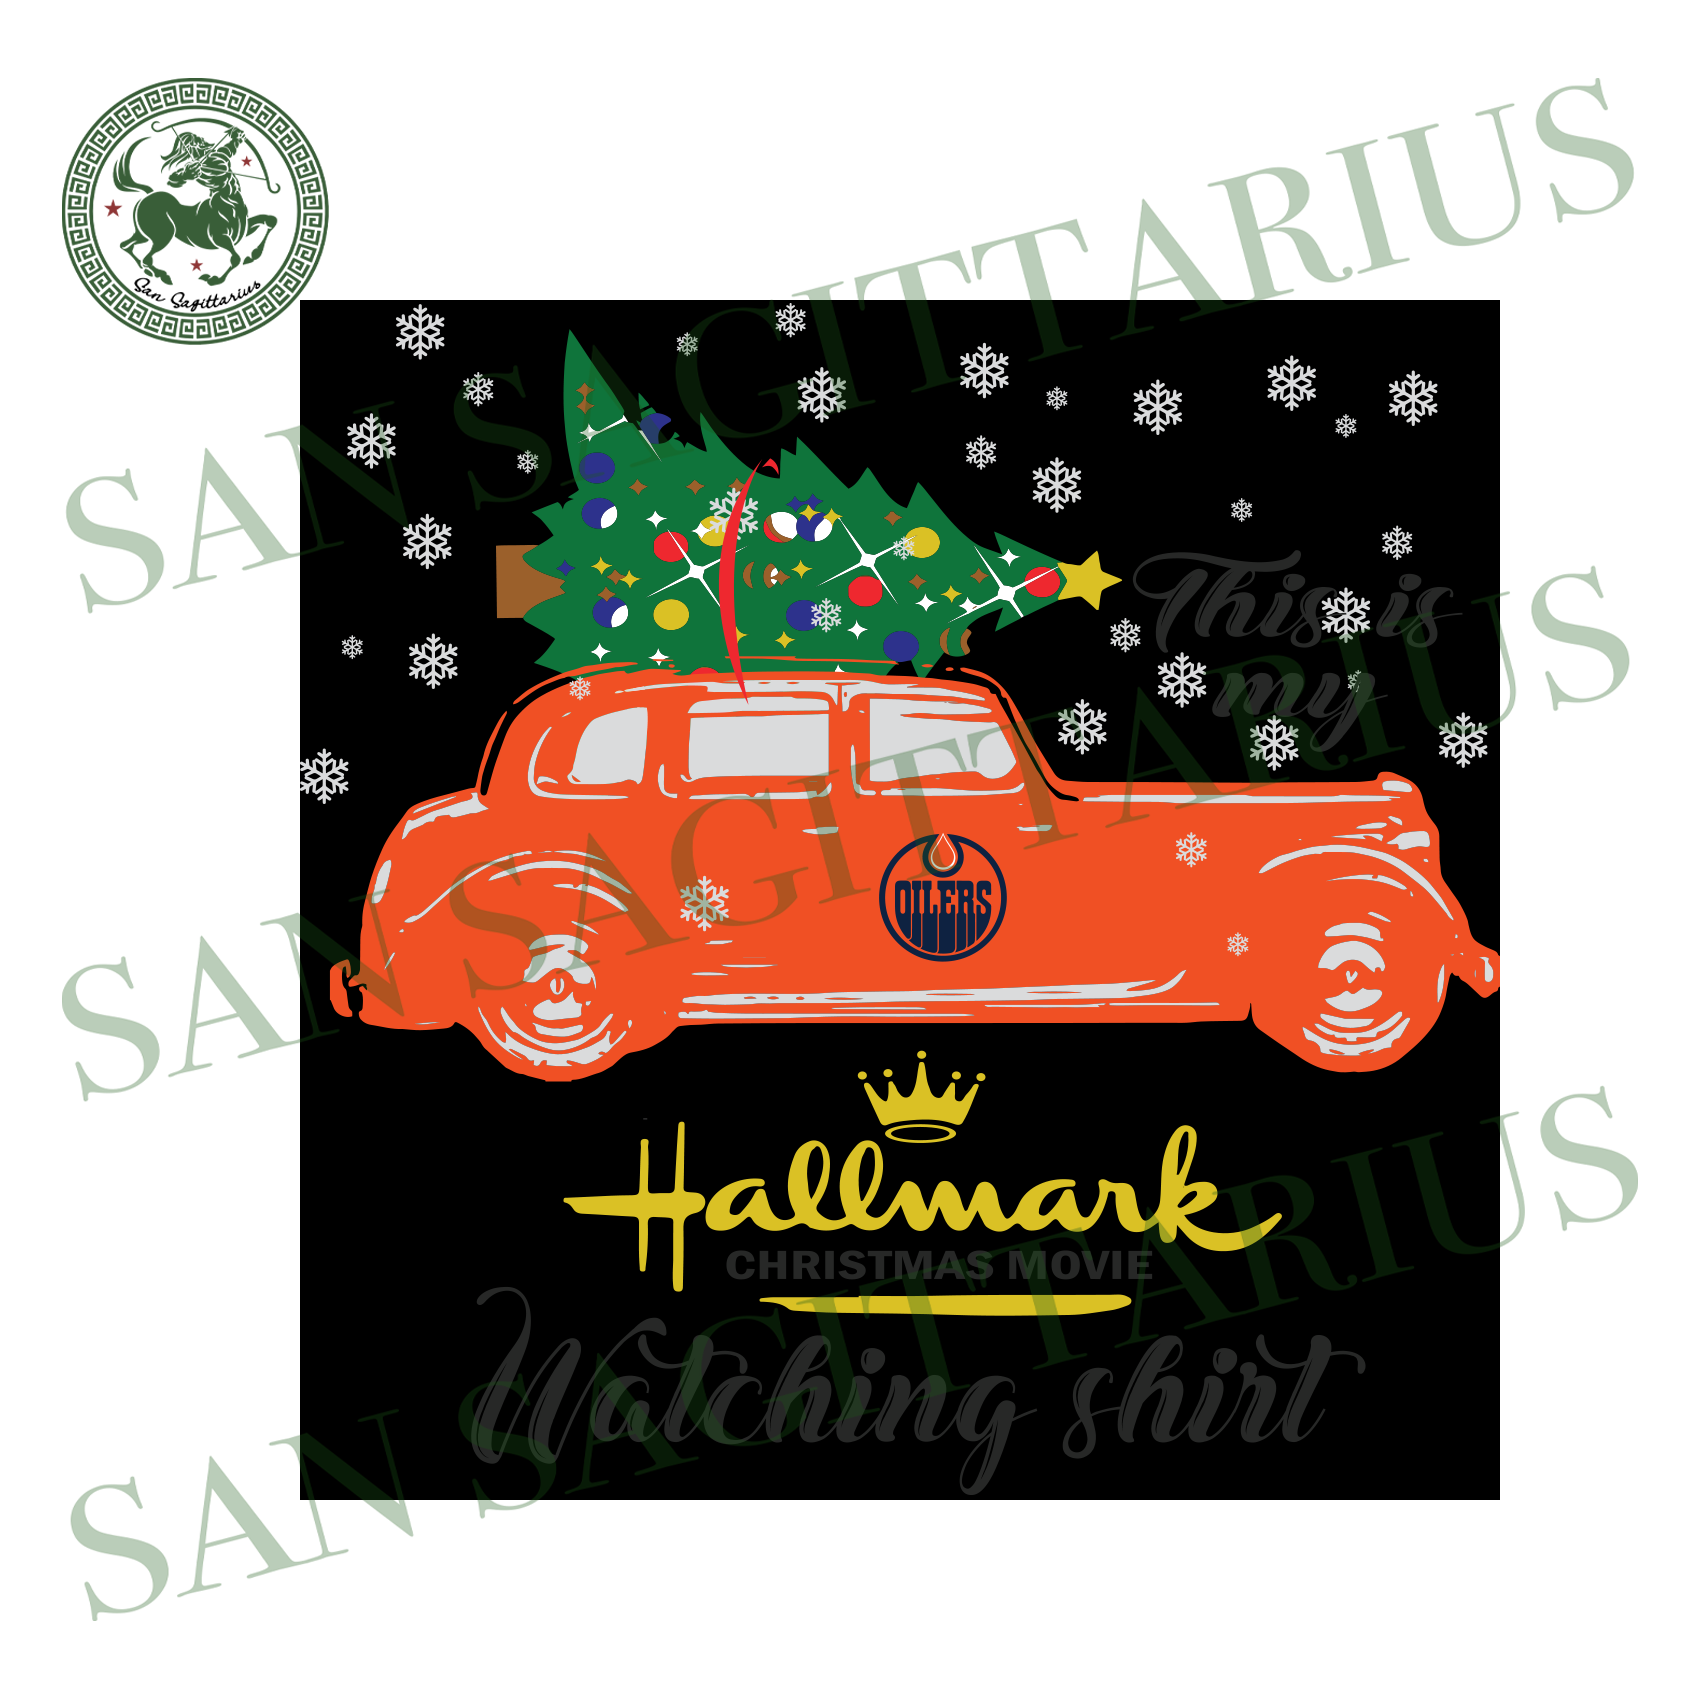 Edmonton Oilers This Is My Hallmark Christmas Movie Watching Shirt, Sport Svg, Christmas Svg, Edmonton Oilers Svg, NHL Sport Svg, Edmonton Oilers NHL Svg, Edmonton Oilers NHL Gift, Hockey Svg